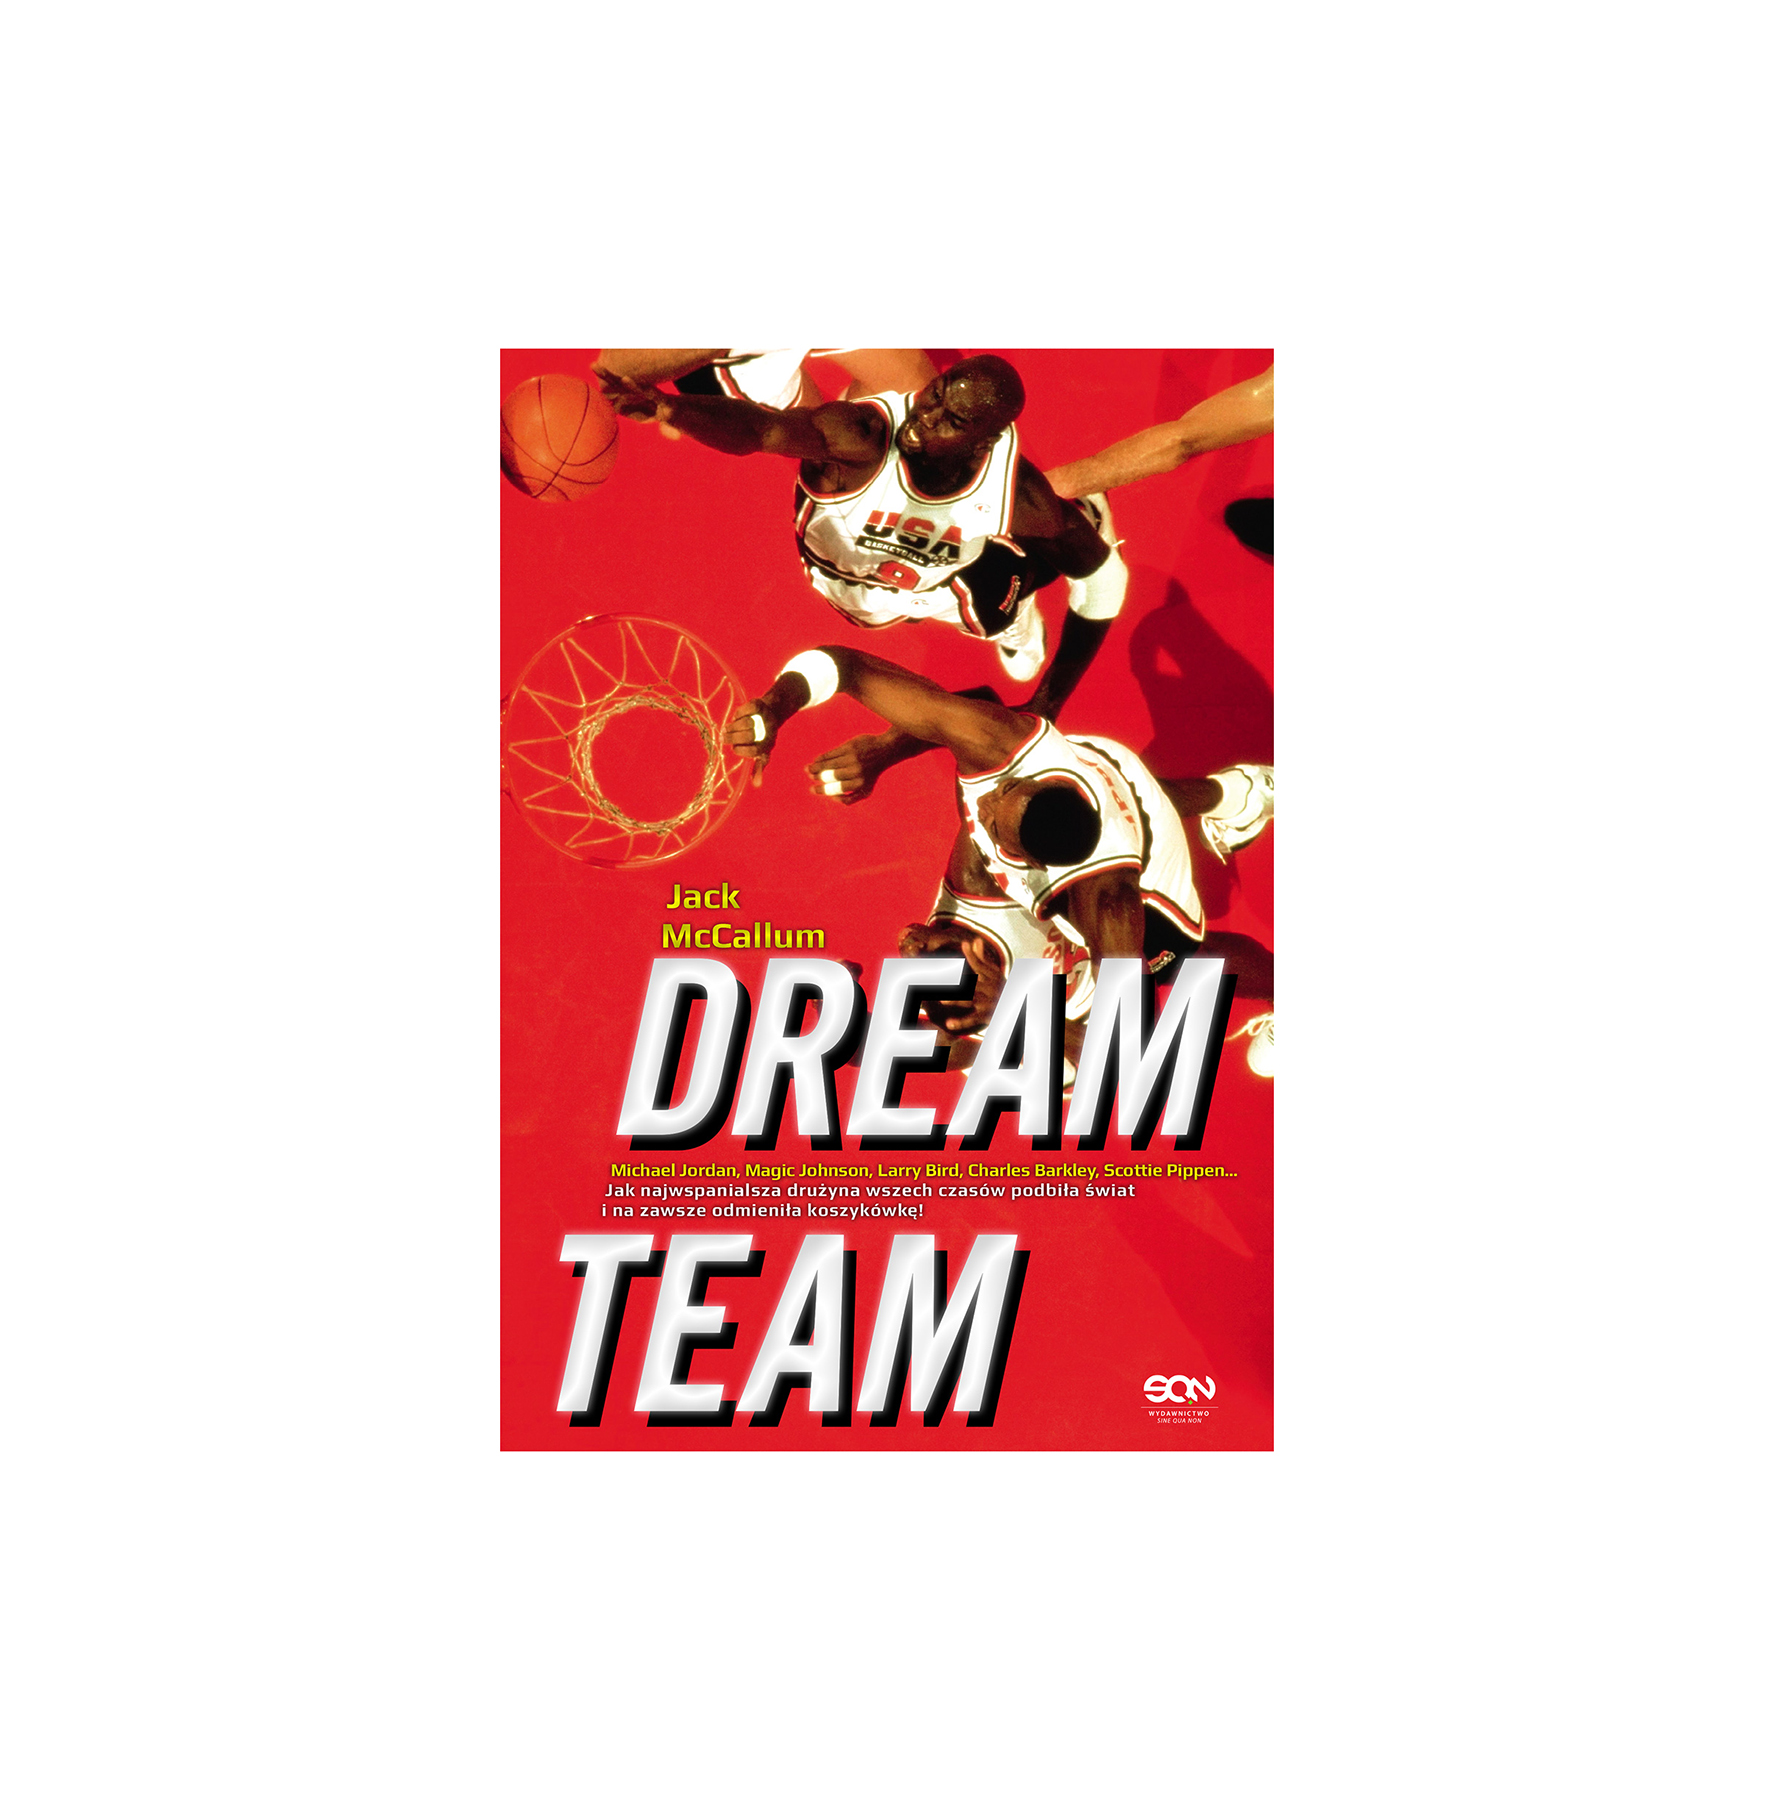 Dream Team, by Jack McCallum